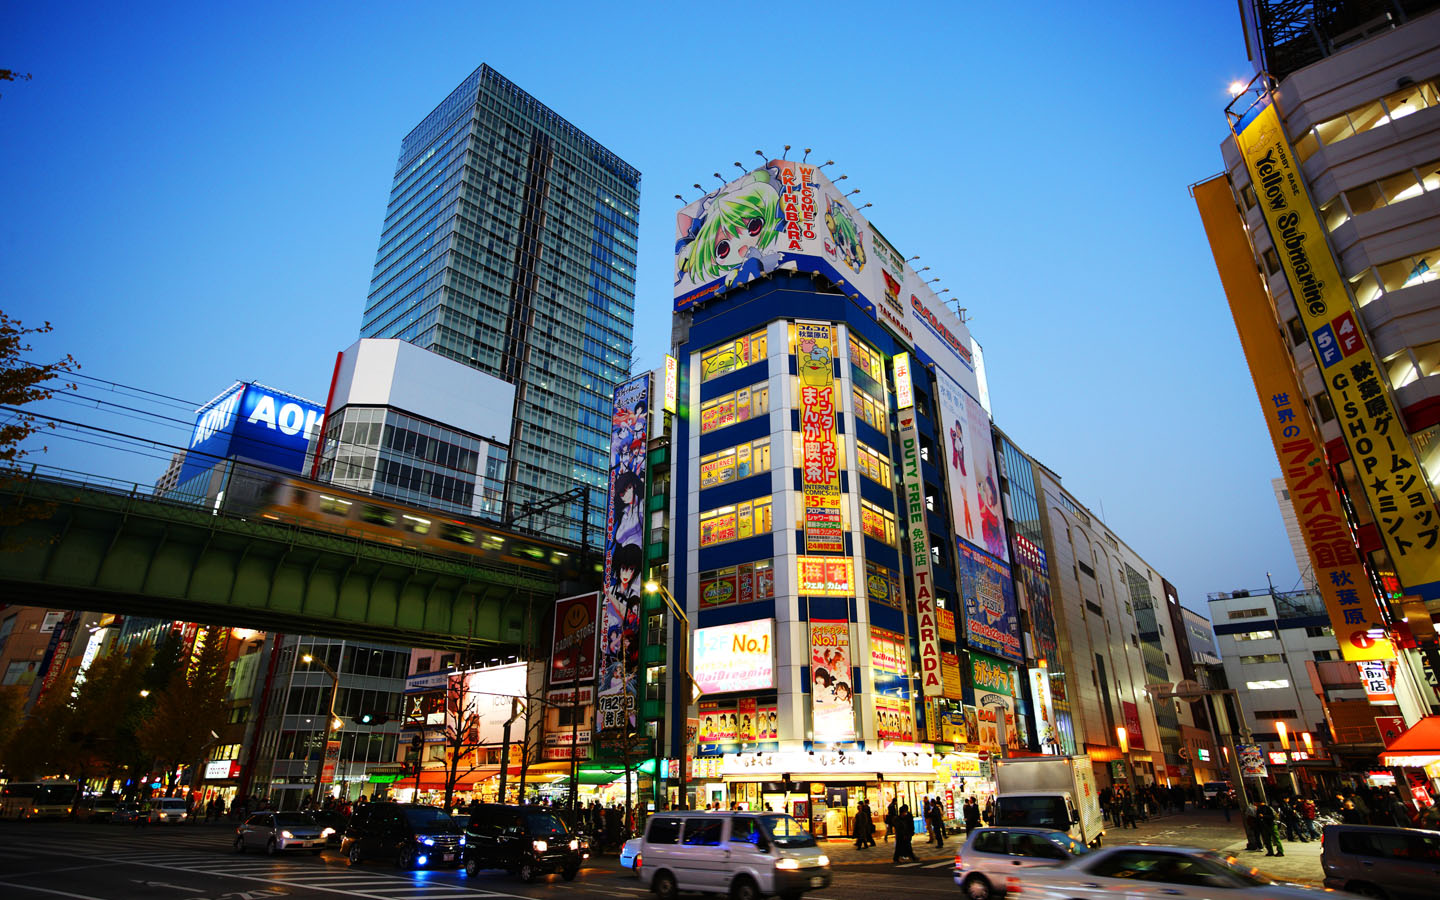 (English) Day Trip: 328 Hostel & Lounge to Akihabara